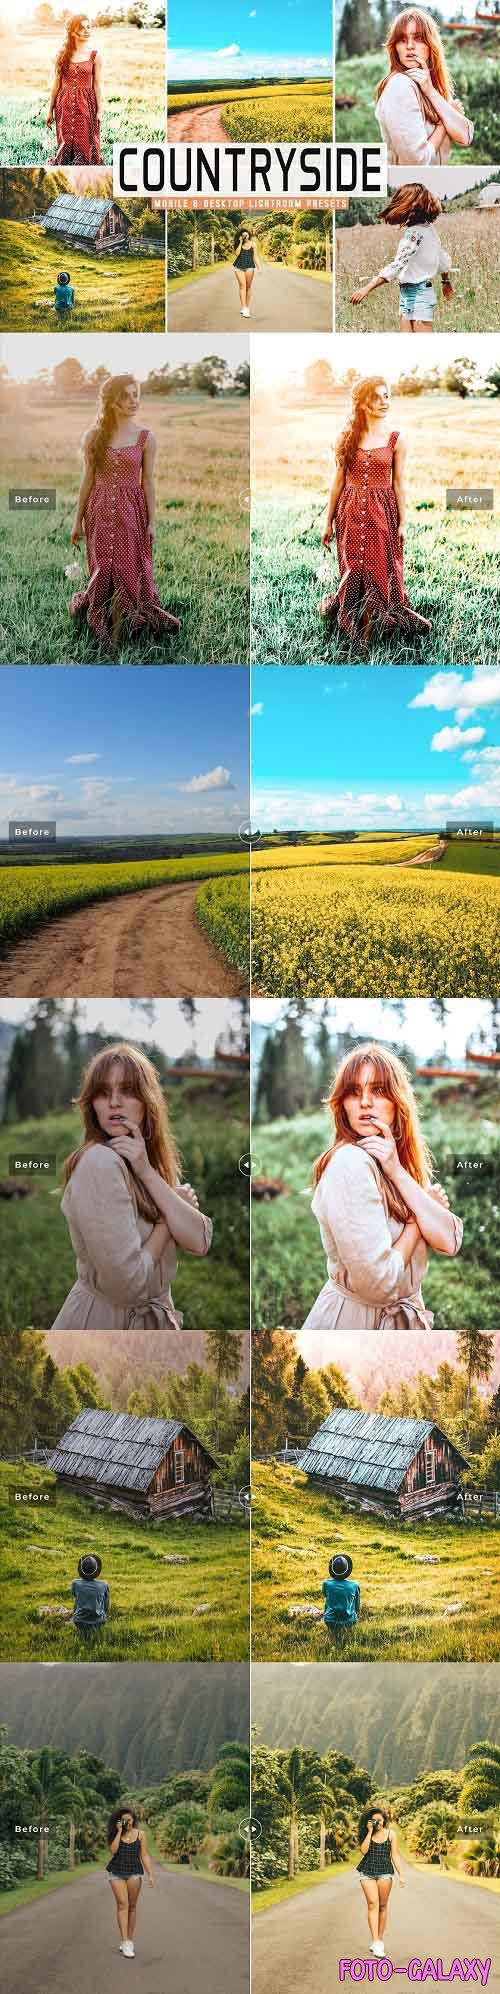 Countryside Pro Lightroom Presets - 5524086